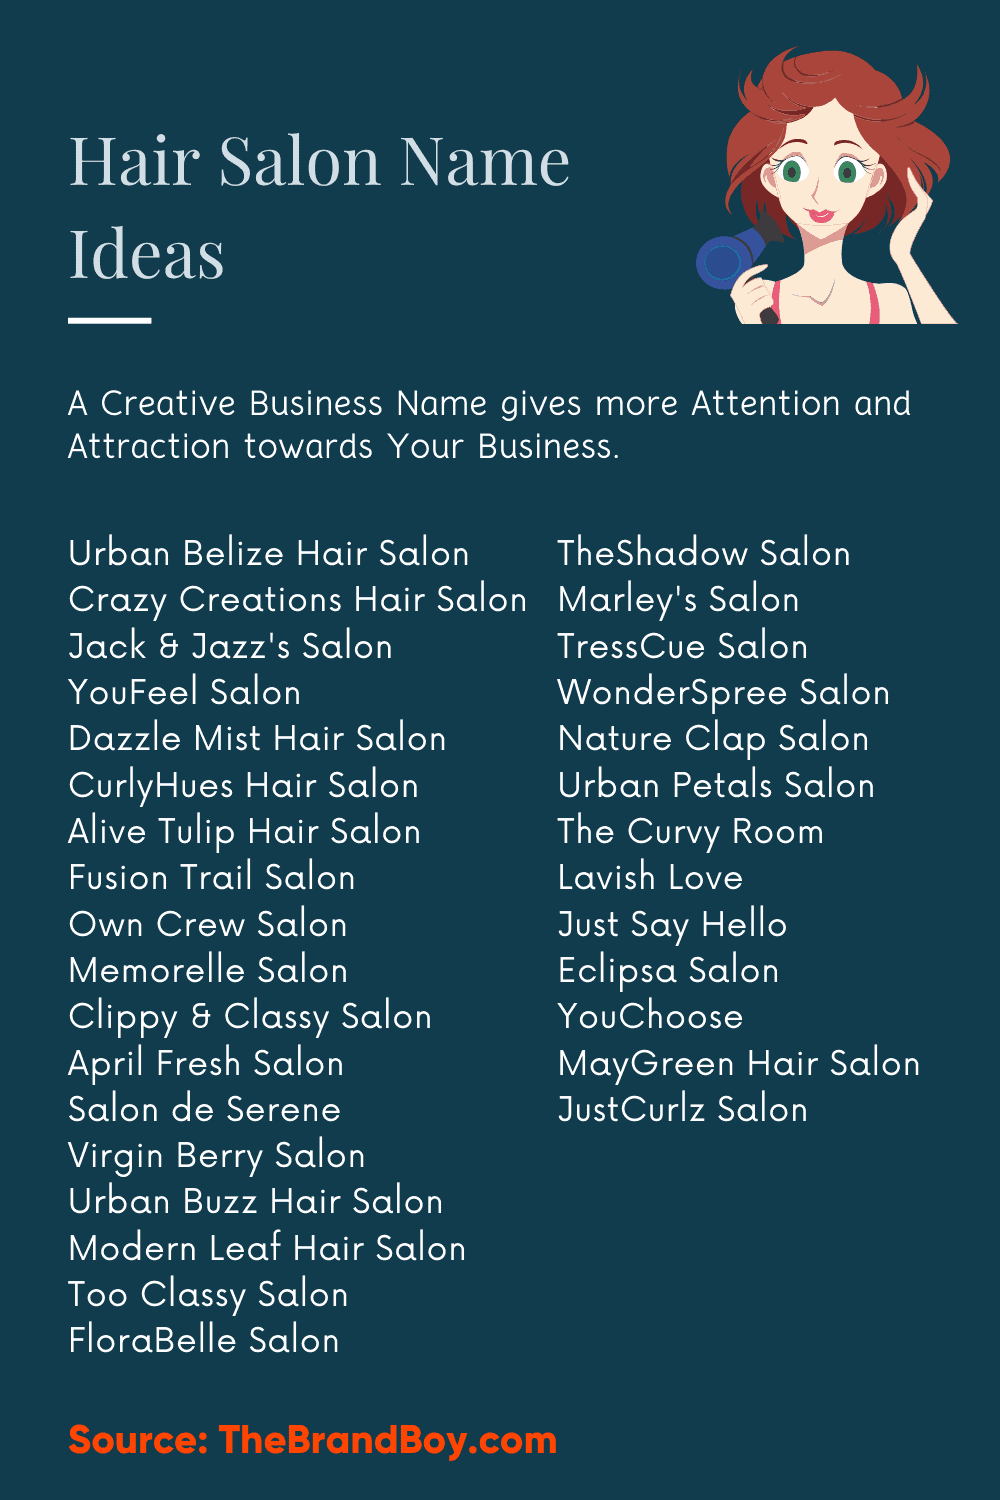 18+ Creative Hair Salon Names & Ideas - theBrandBoy.com